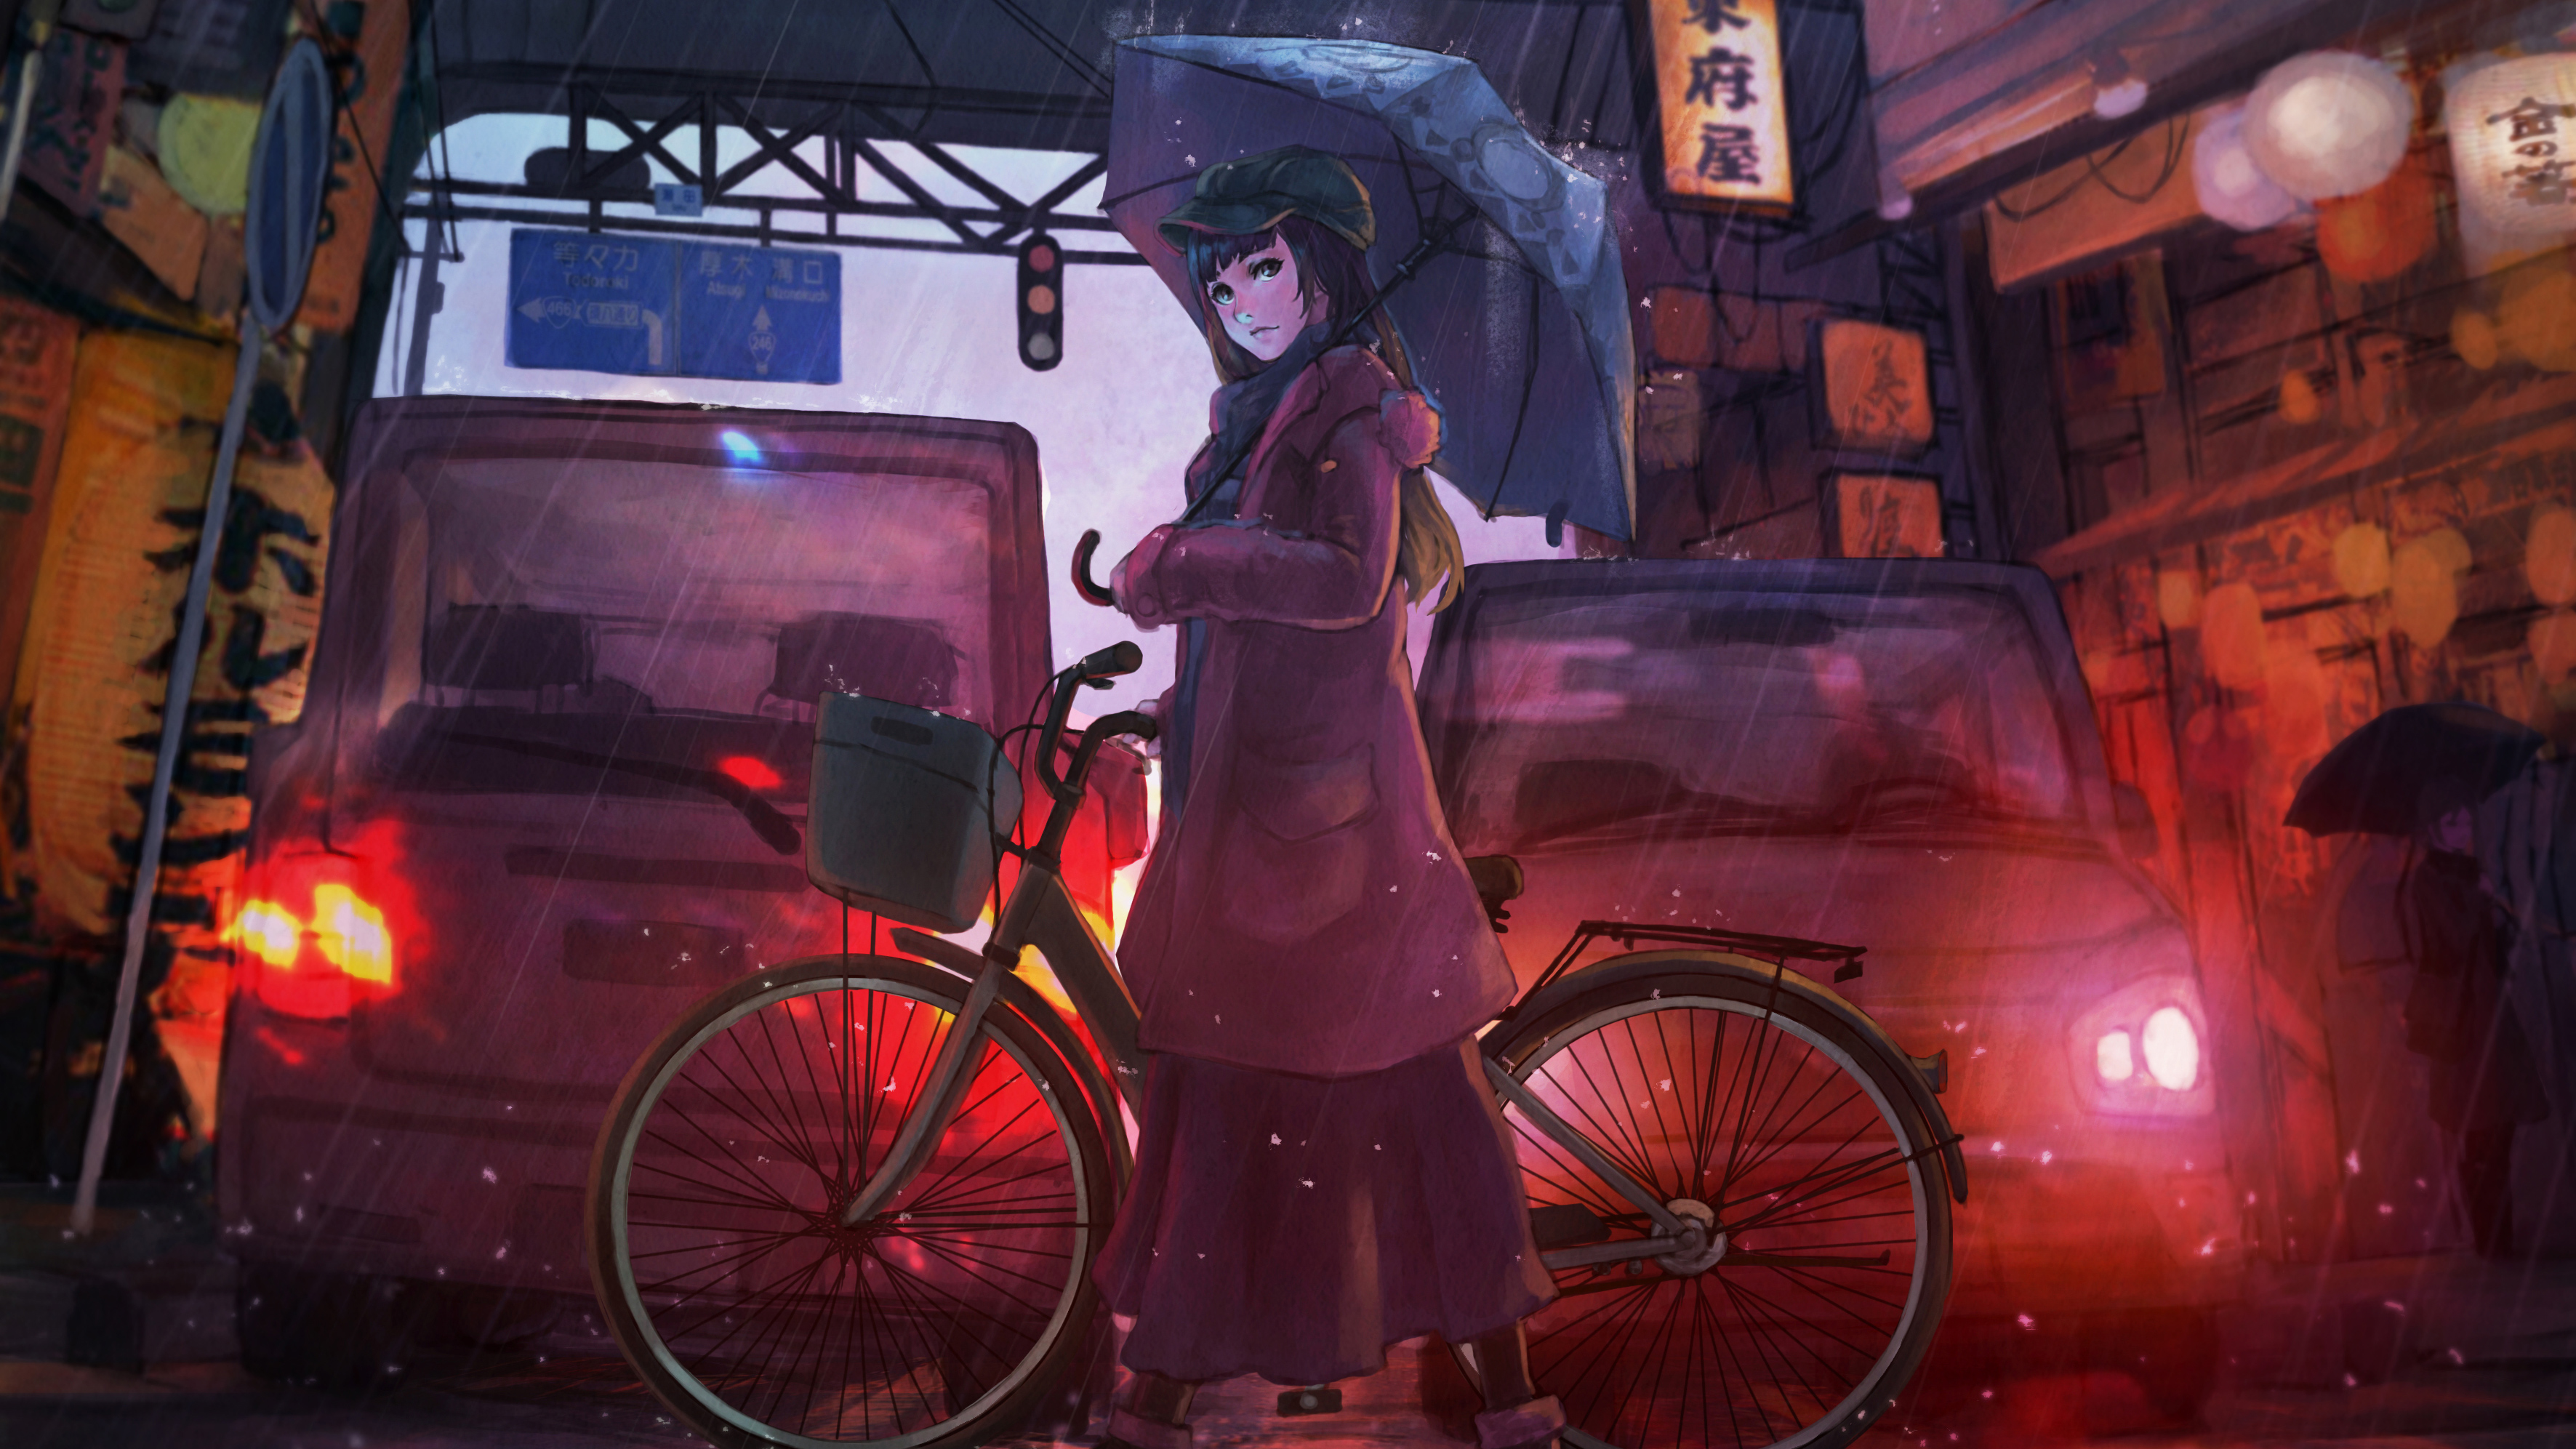 Anime Girl Cyle Rain Umbrella Hd Anime 4k Wallpapers Images Backgrounds Photos And Pictures